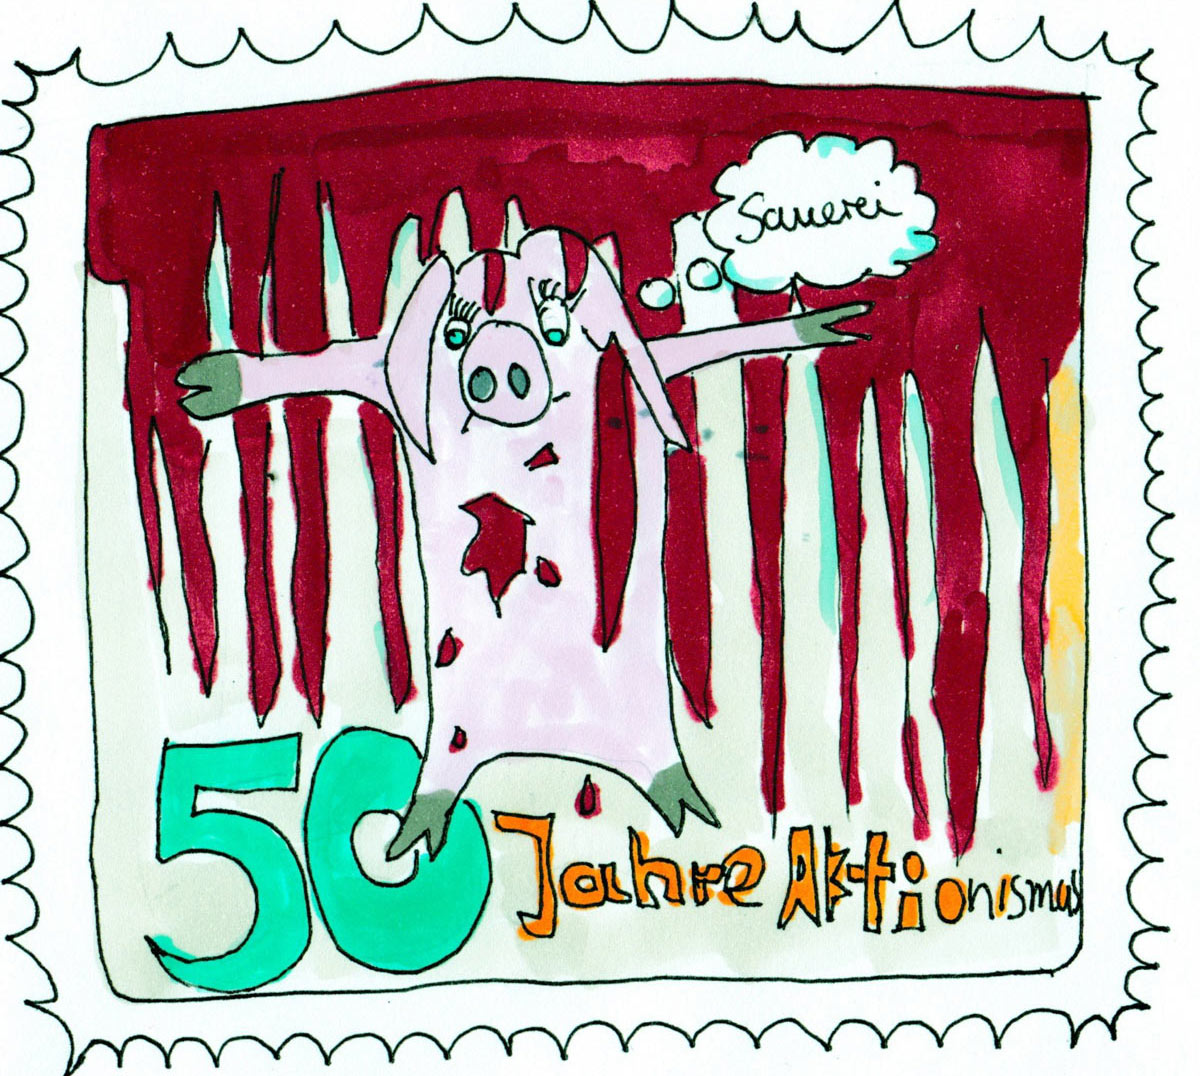 Cosima Reif, 50 Jahre Aktionismus, 50 years of (Viennese) Actionism, stamp from the Austrian Pure Chance Postal Service, 2018